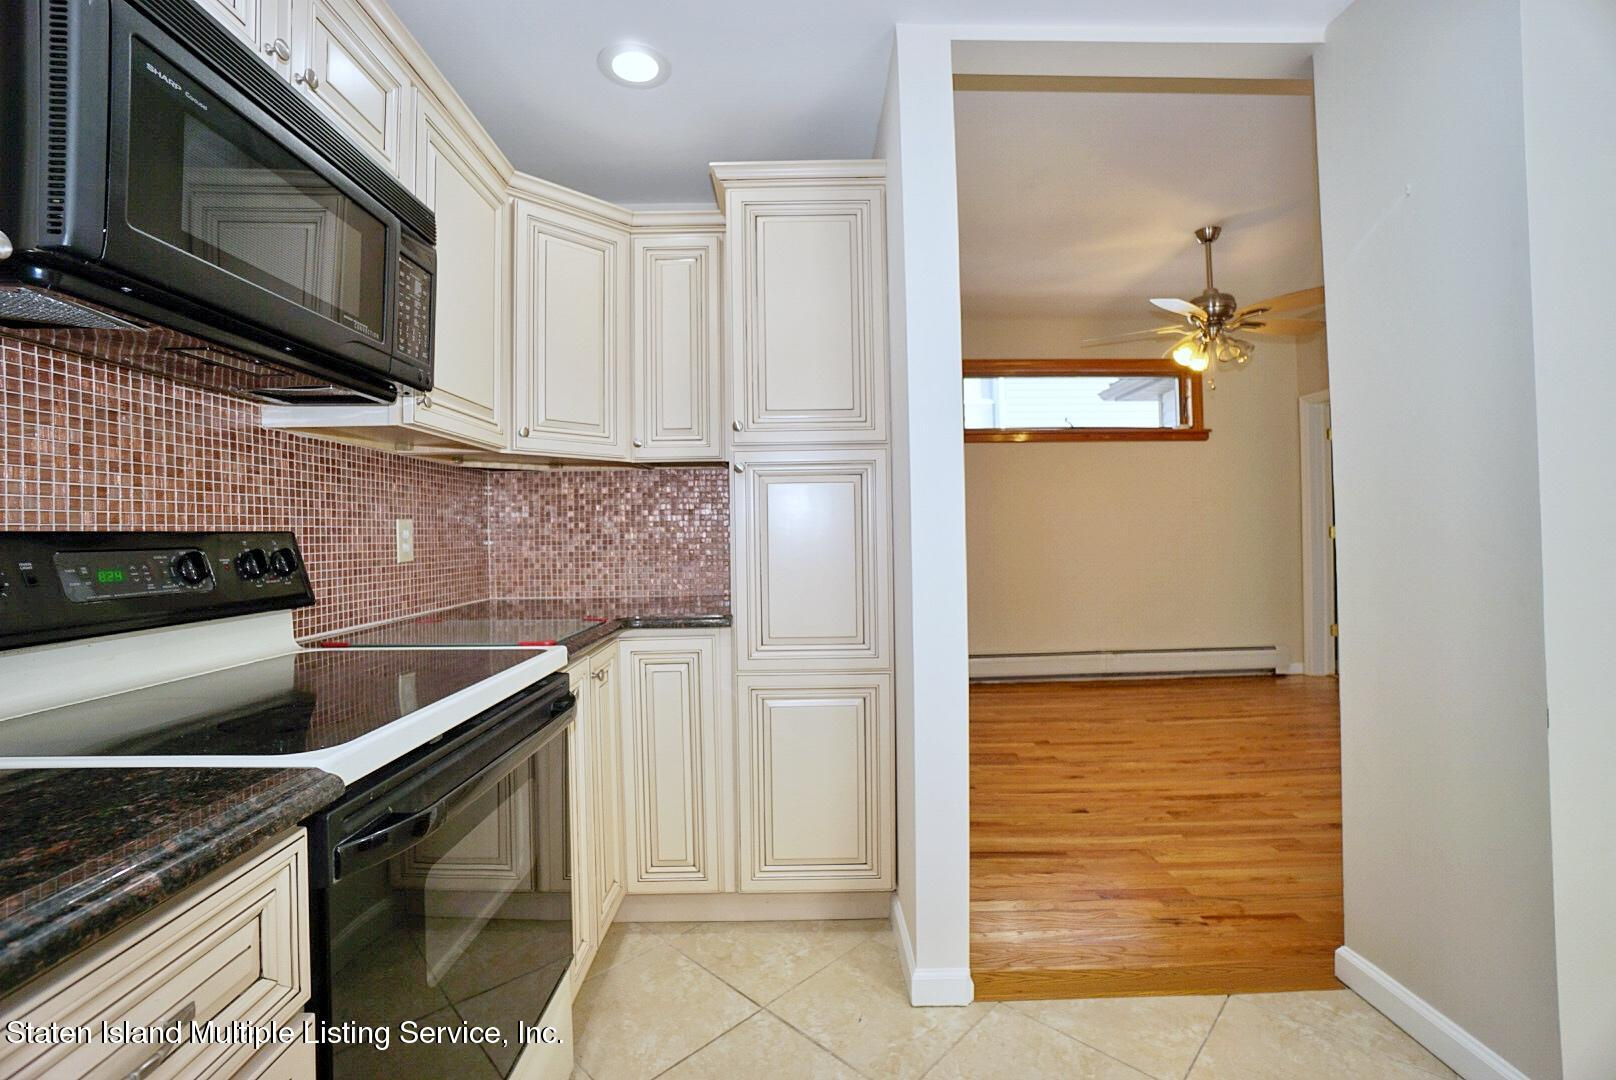 Single Family - Detached 97 Knox Place  Staten Island, NY 10314, MLS-1143147-5